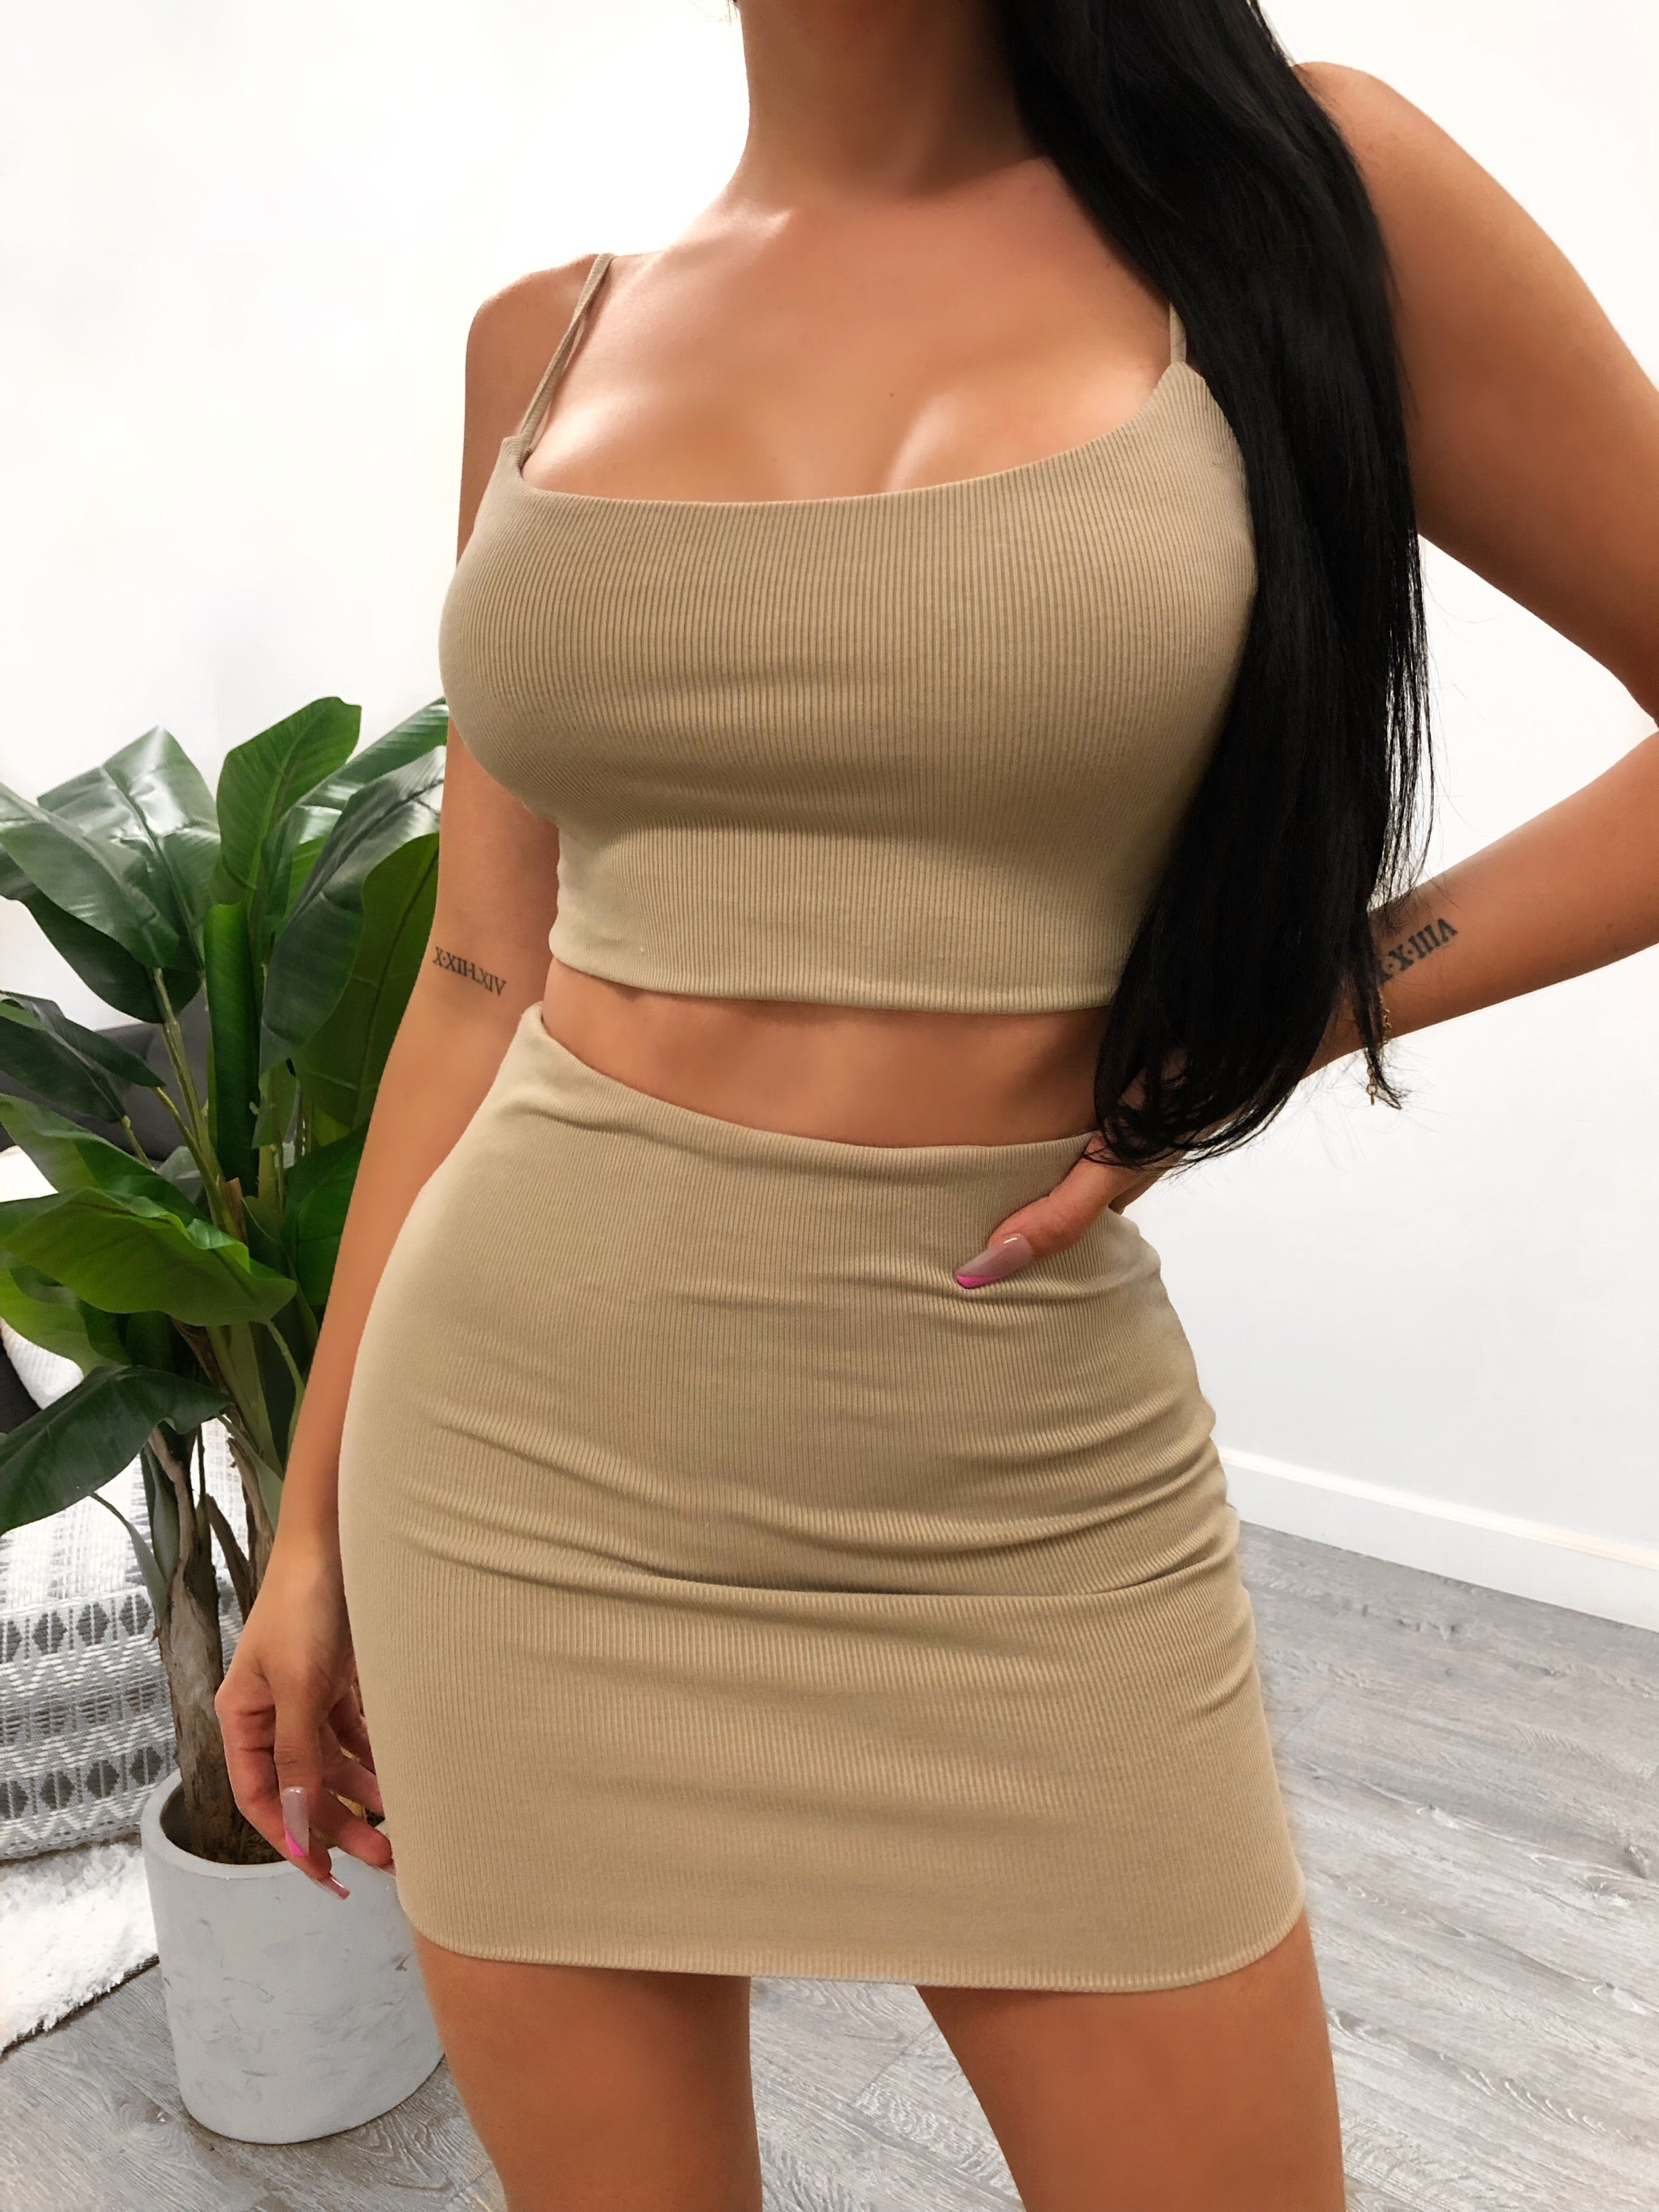 tan 2 piece set. crop top with adjustable spaghetti straps. skirt is above mid thigh length.